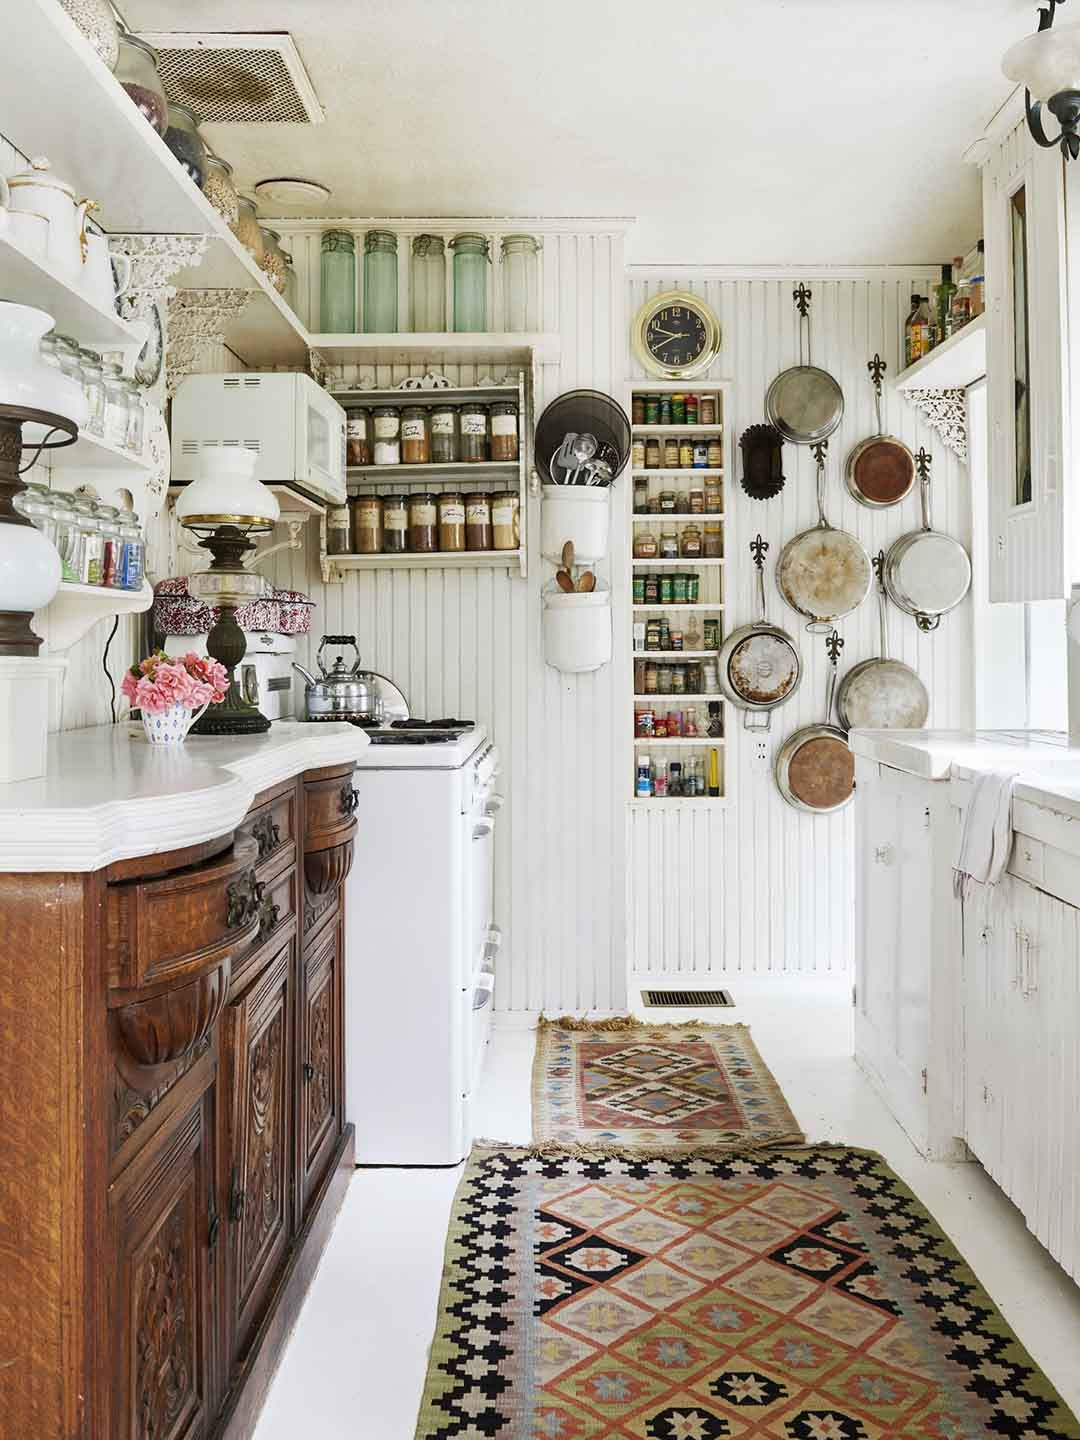 Cottage Kitchen | Eclectic Vintage Kitchen Decor | Open Shelving Kitchen | Small  Kitchen Organization